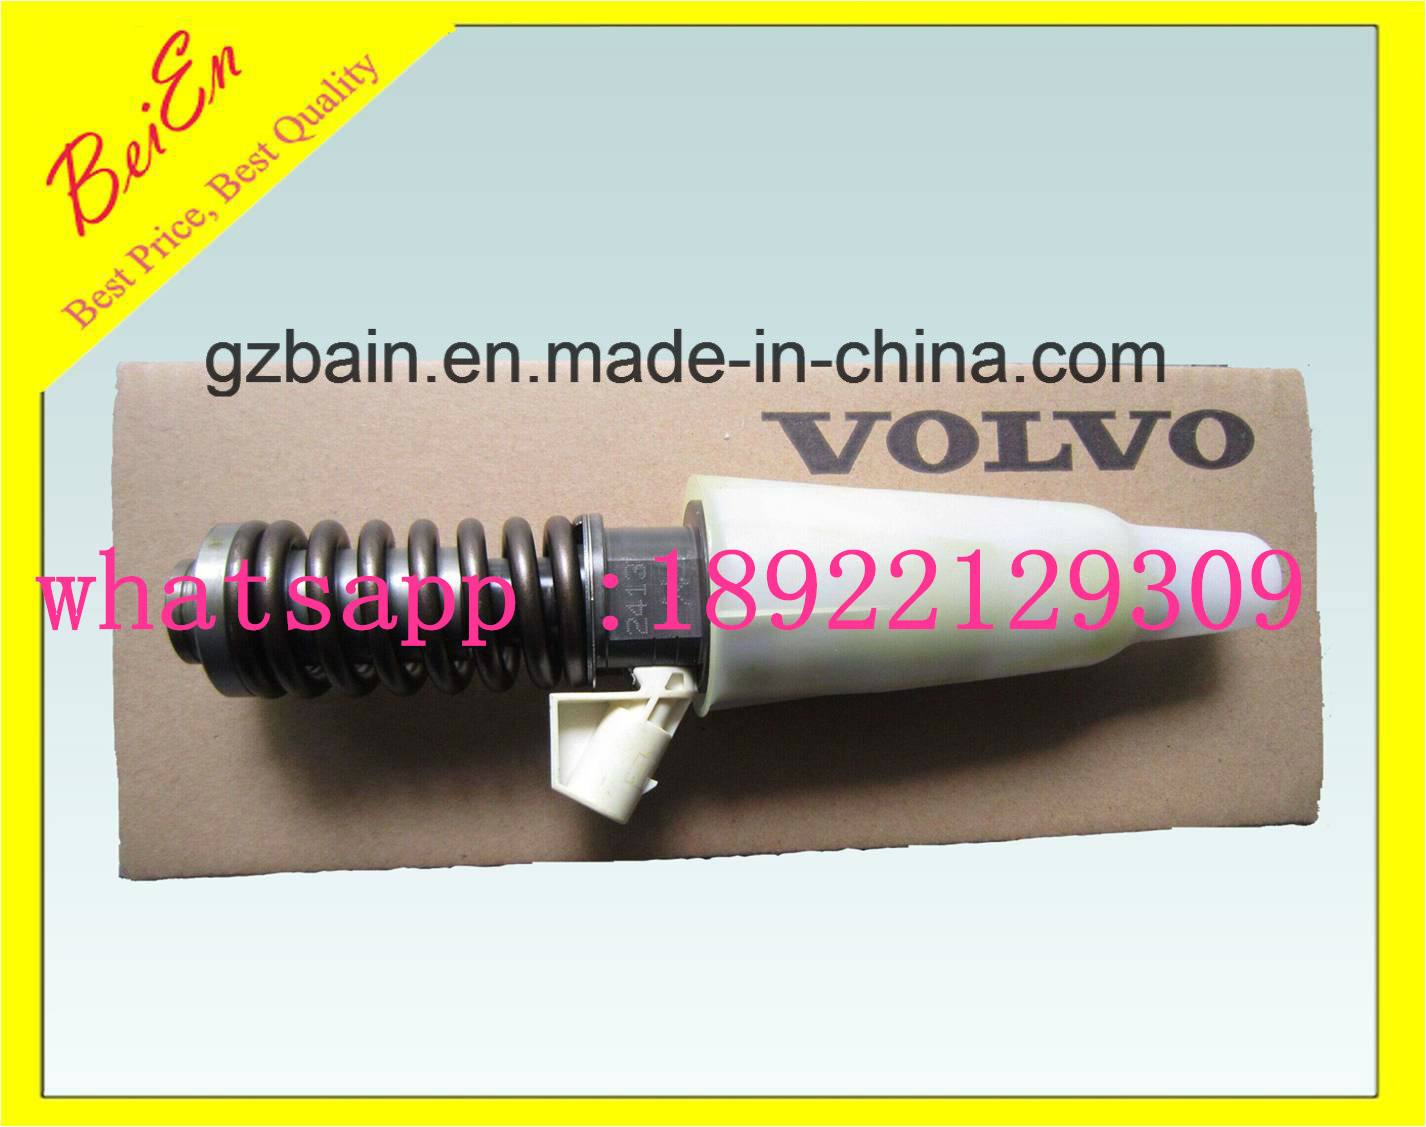 Original/Genuine Fuel Injector Volvo360/460 Engine Made in Japan 20440388